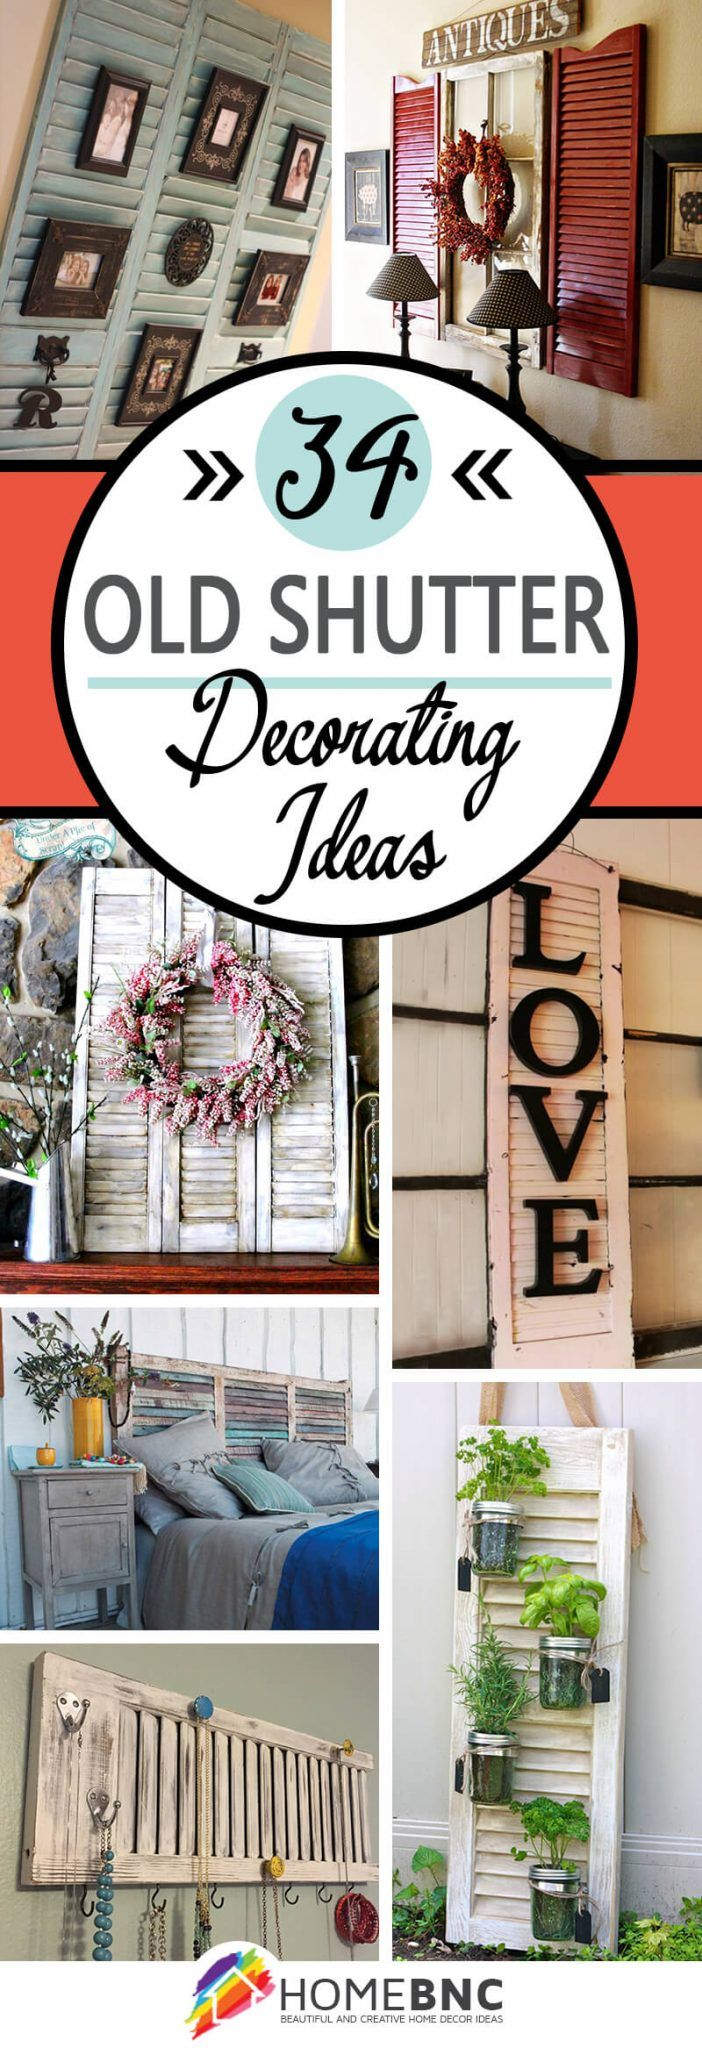 34 Ways Decorating with Old Shutters Can